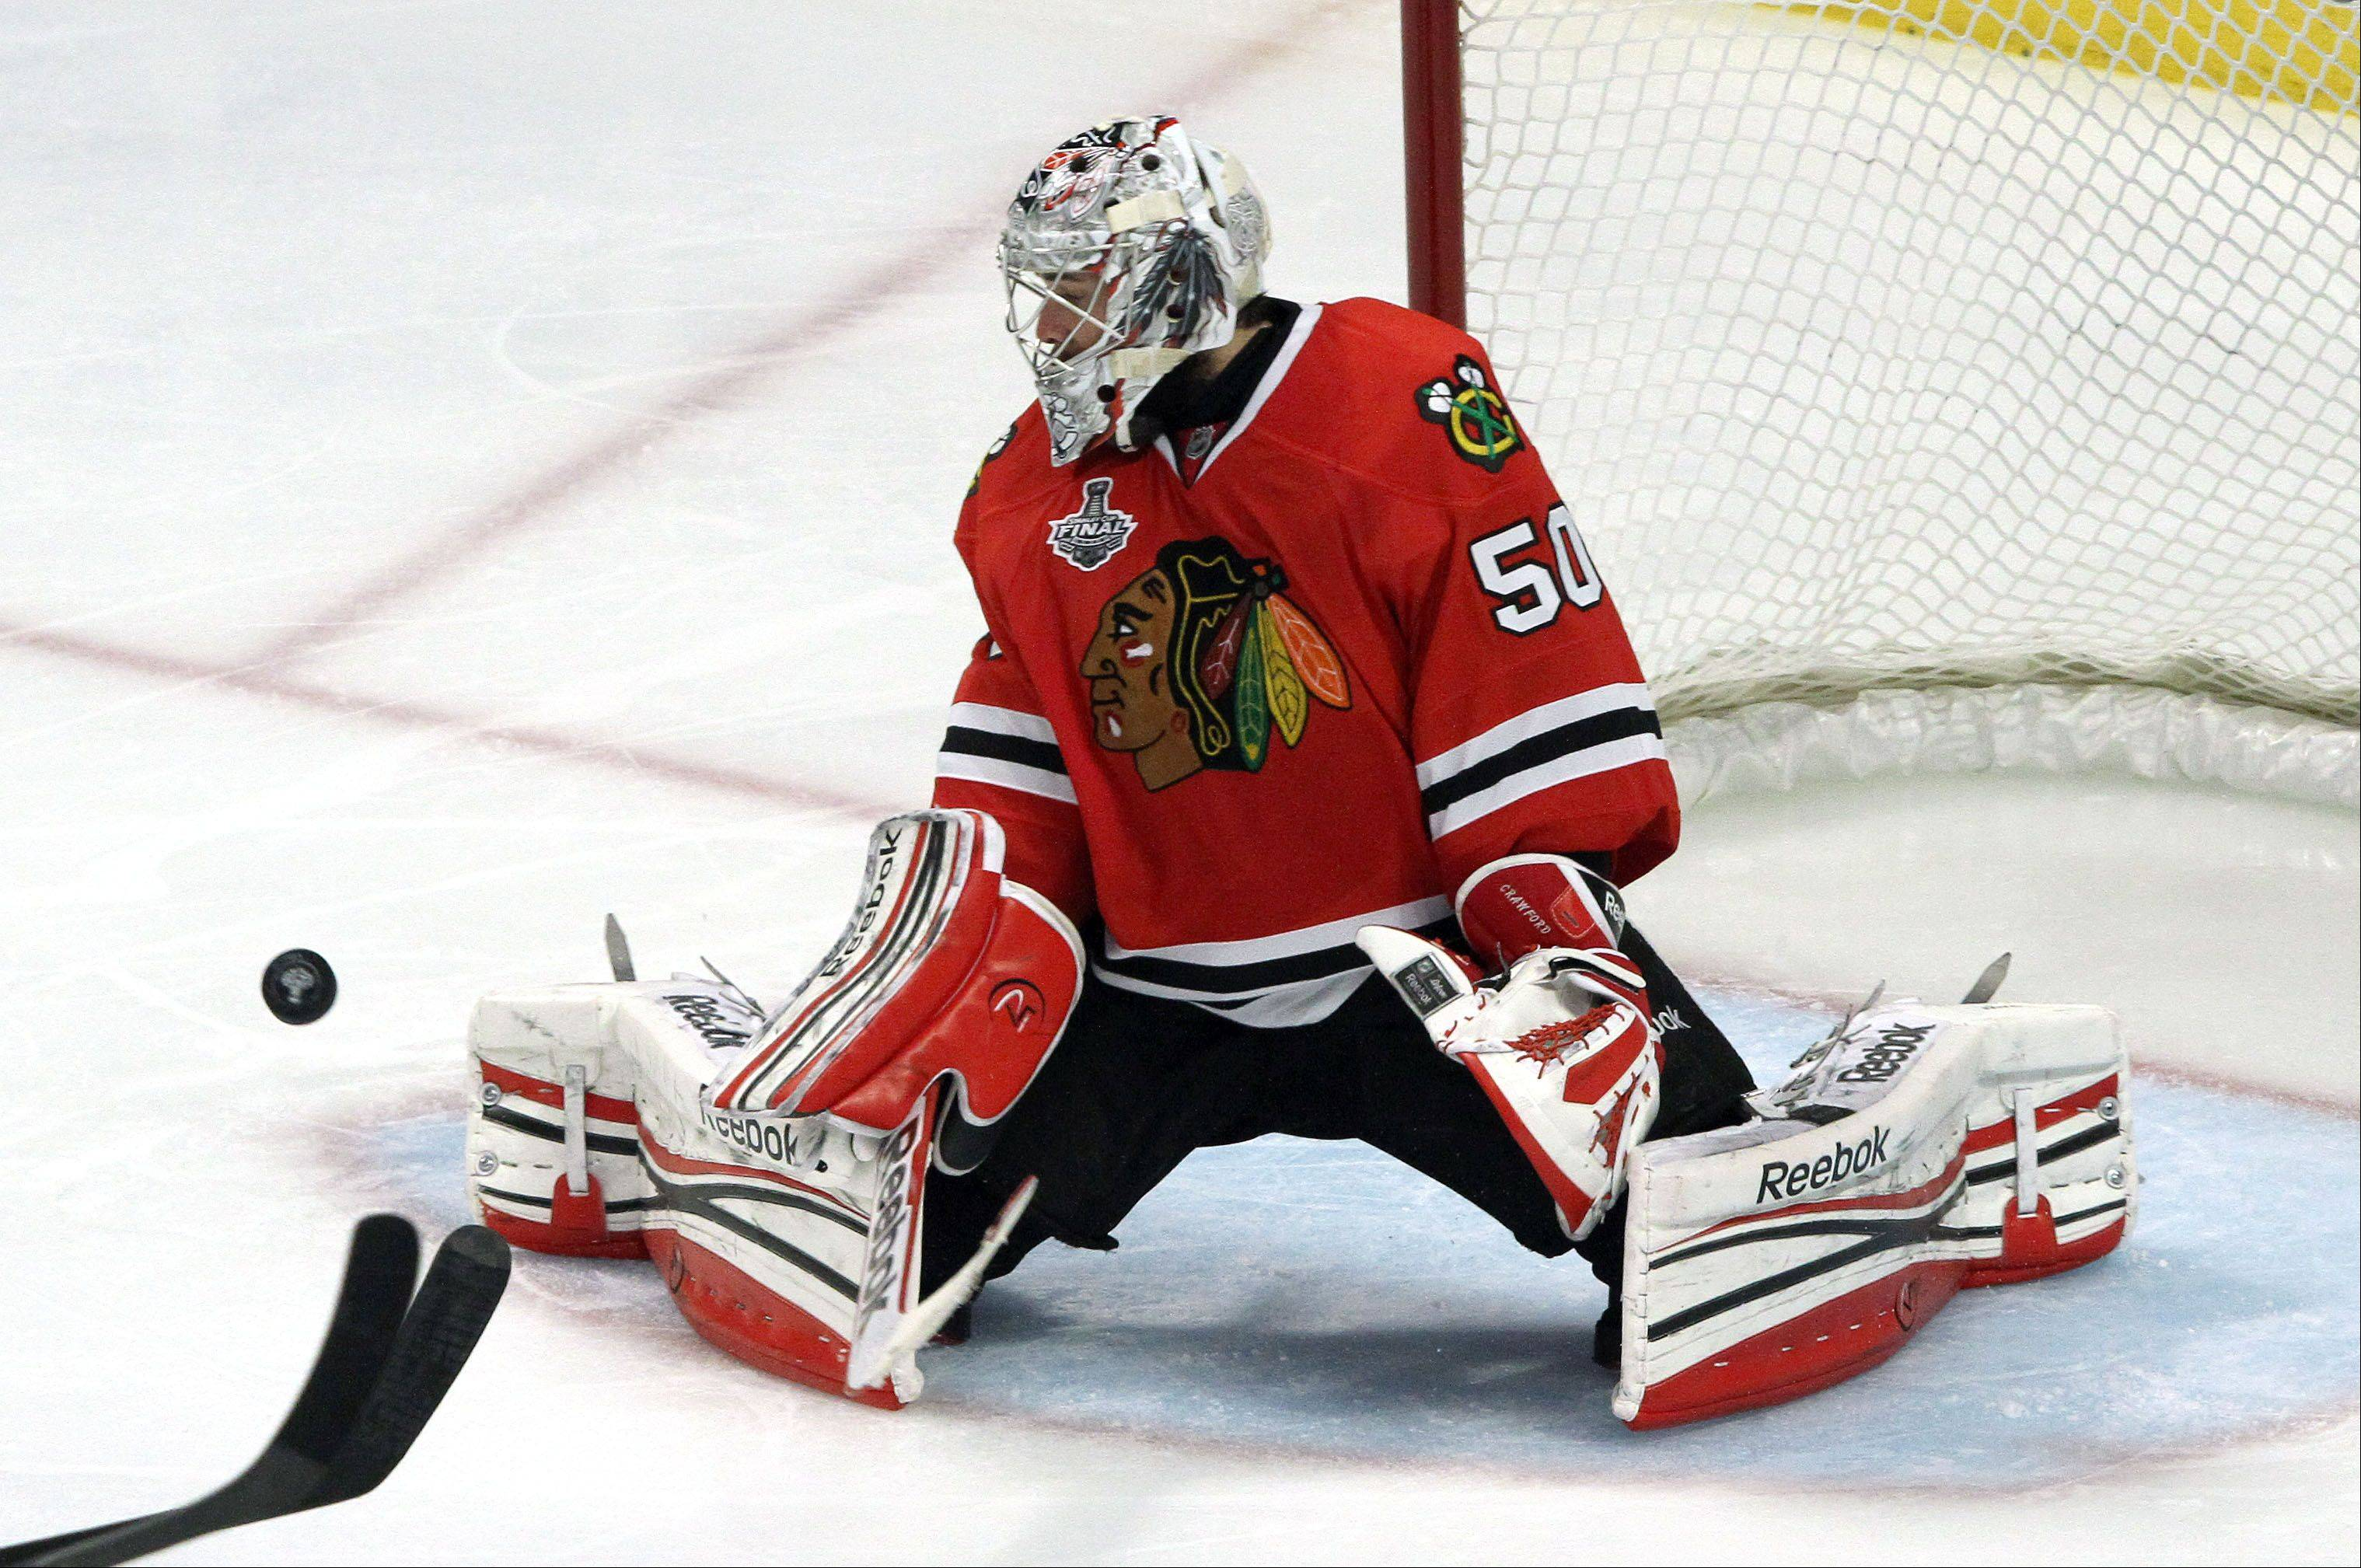 Chicago Blackhawks goalie Corey Crawford makes a save during game 2 of the Stanley Cup Finals against the Boston Bruins at the United Center in Chicago Saturday.